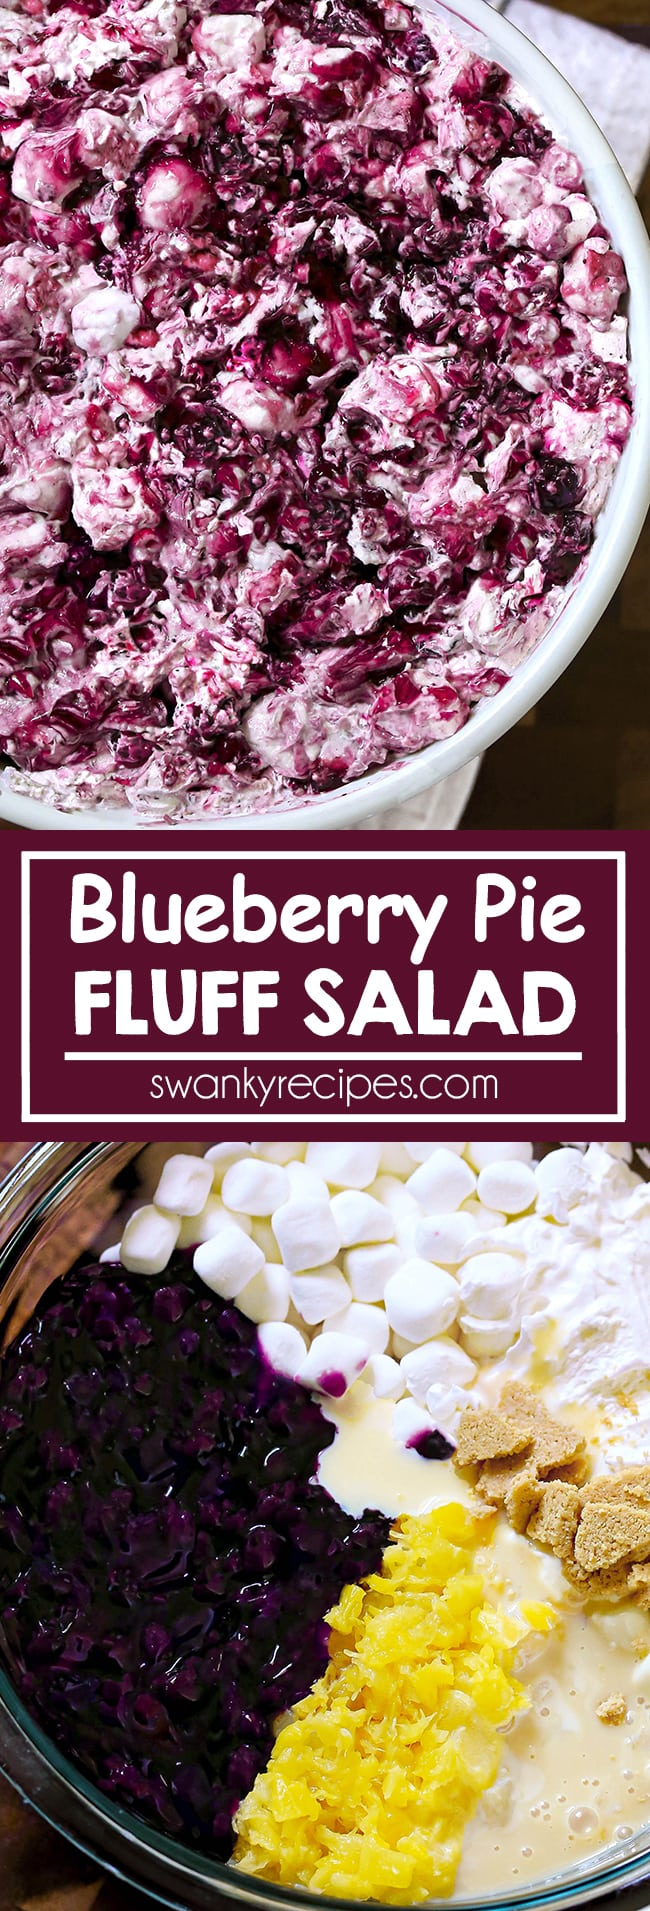 Blueberry Pie Fluff Salad - Blueberry pie filling in a creamy whipped cream marshmallow filling with graham cracker pie crust. Quick, no bake dessert salad and pie recipe.